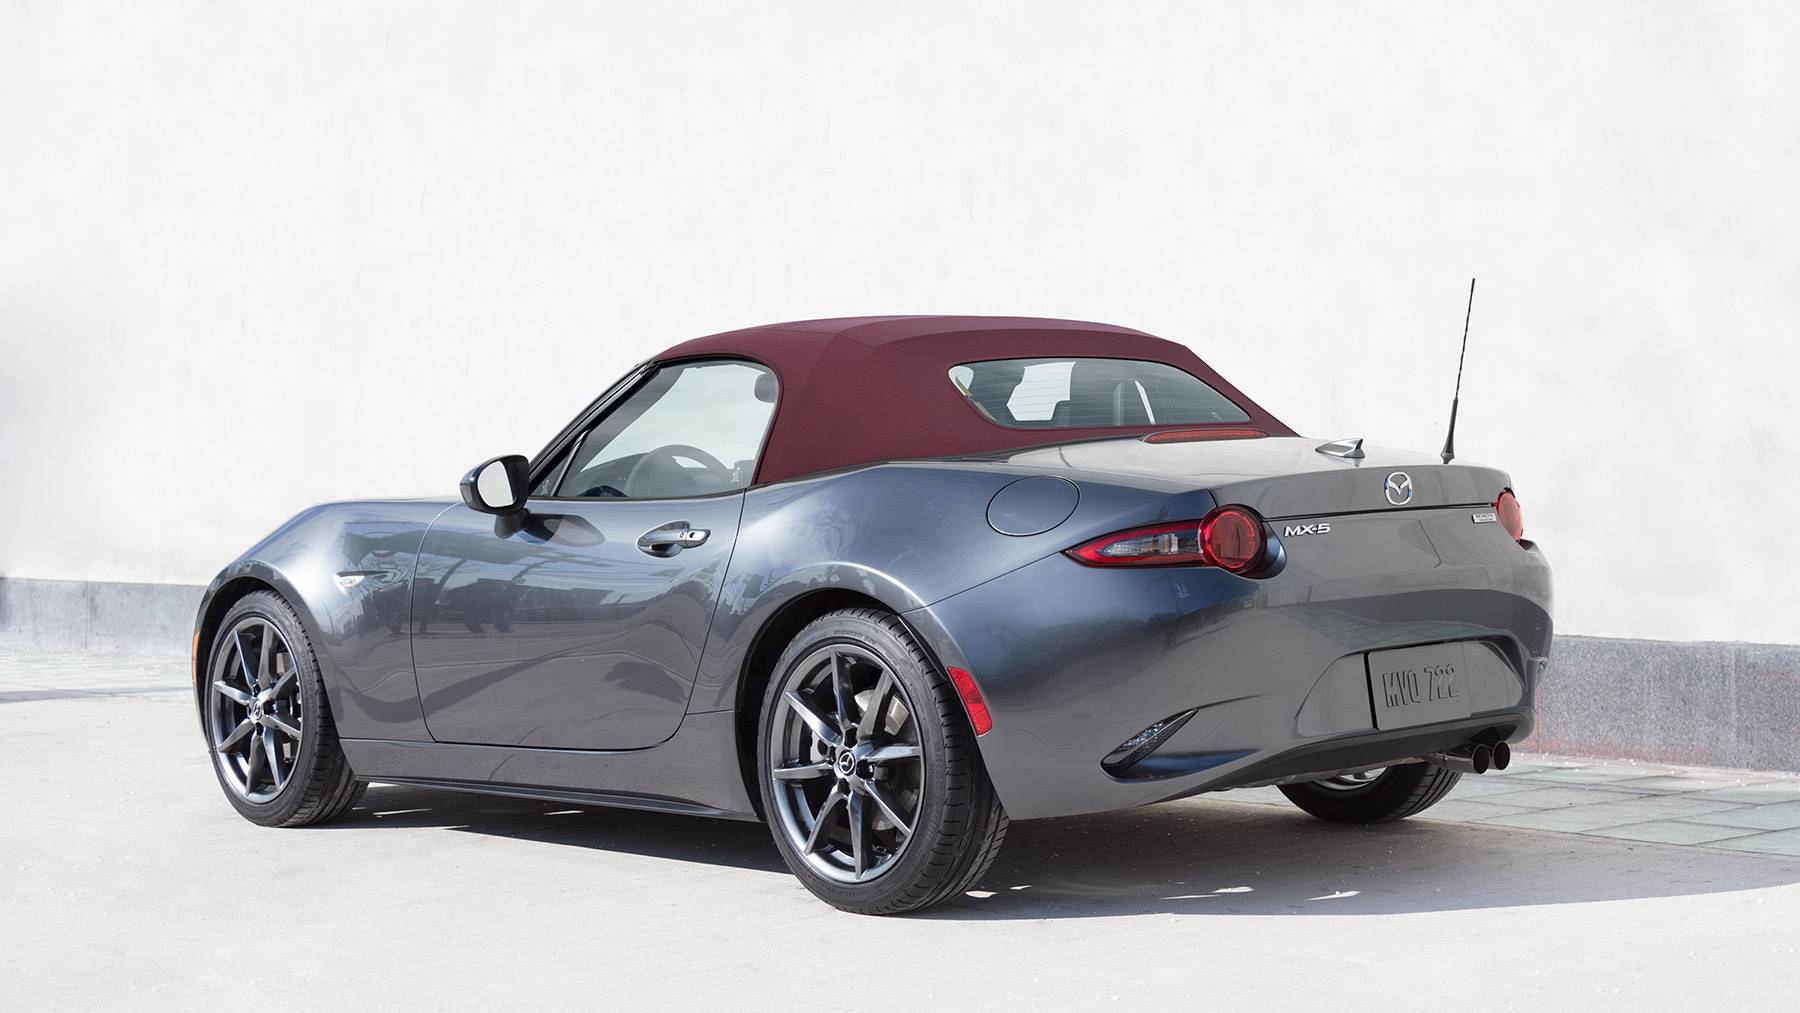 A Sneak Peak at the 2019 Mazda MX-5 Miata - Peruzzi Mazda Blog